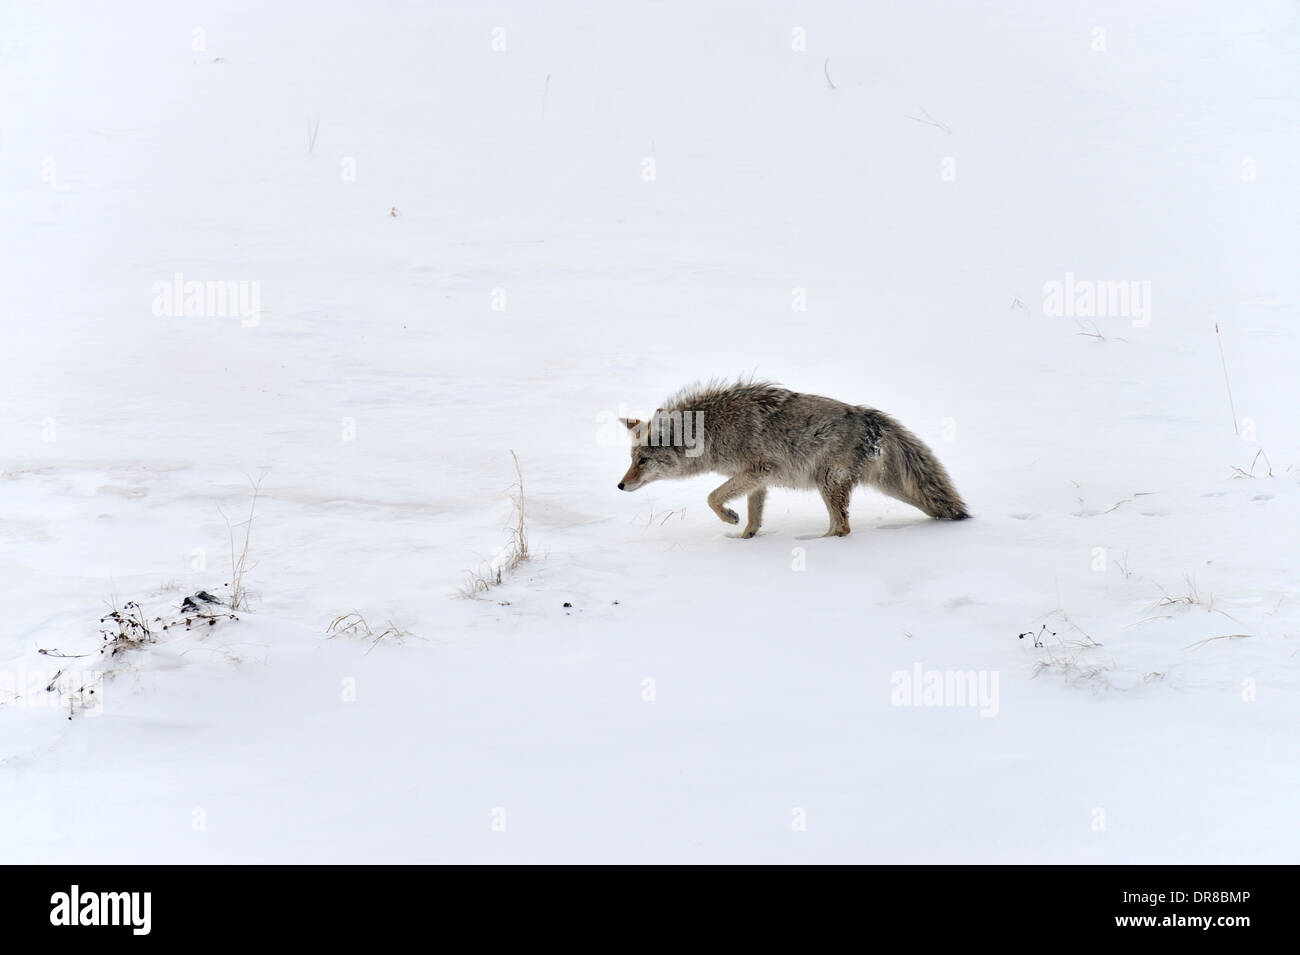 A lone coyote stalking a small prey animal - Stock Image